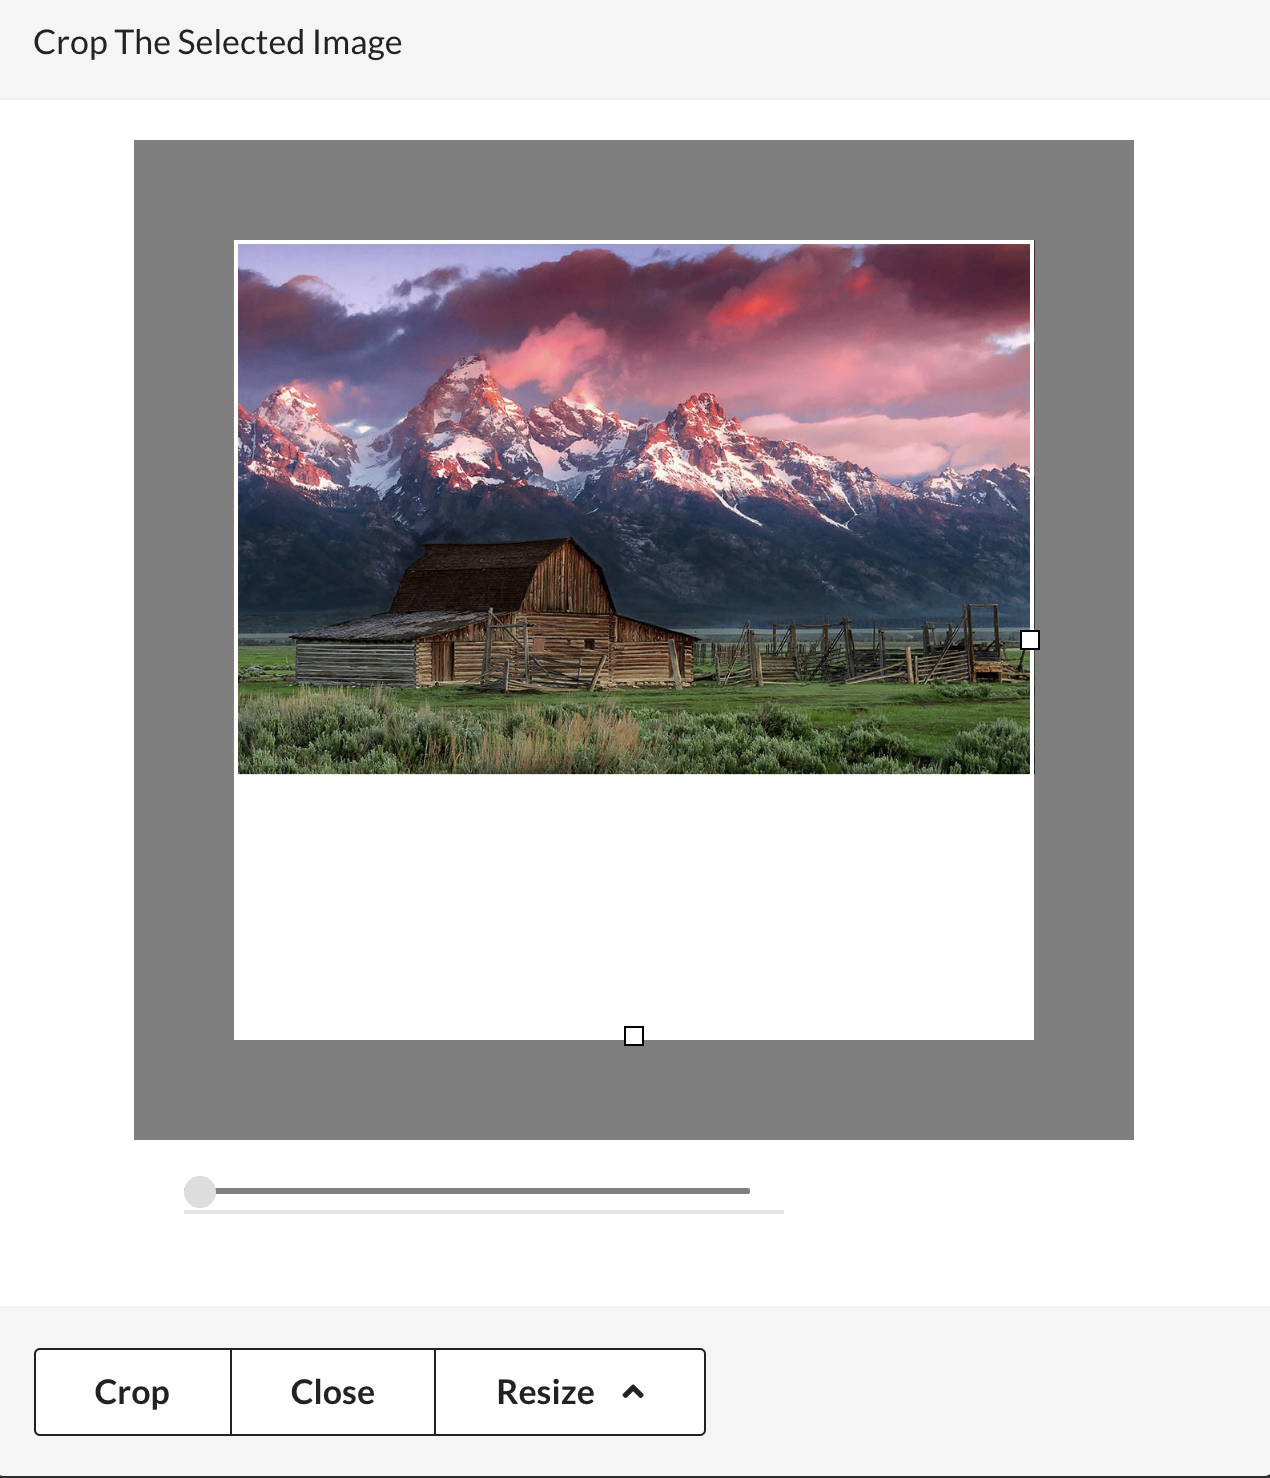 Croppie fails to fit landscape images · Issue #549